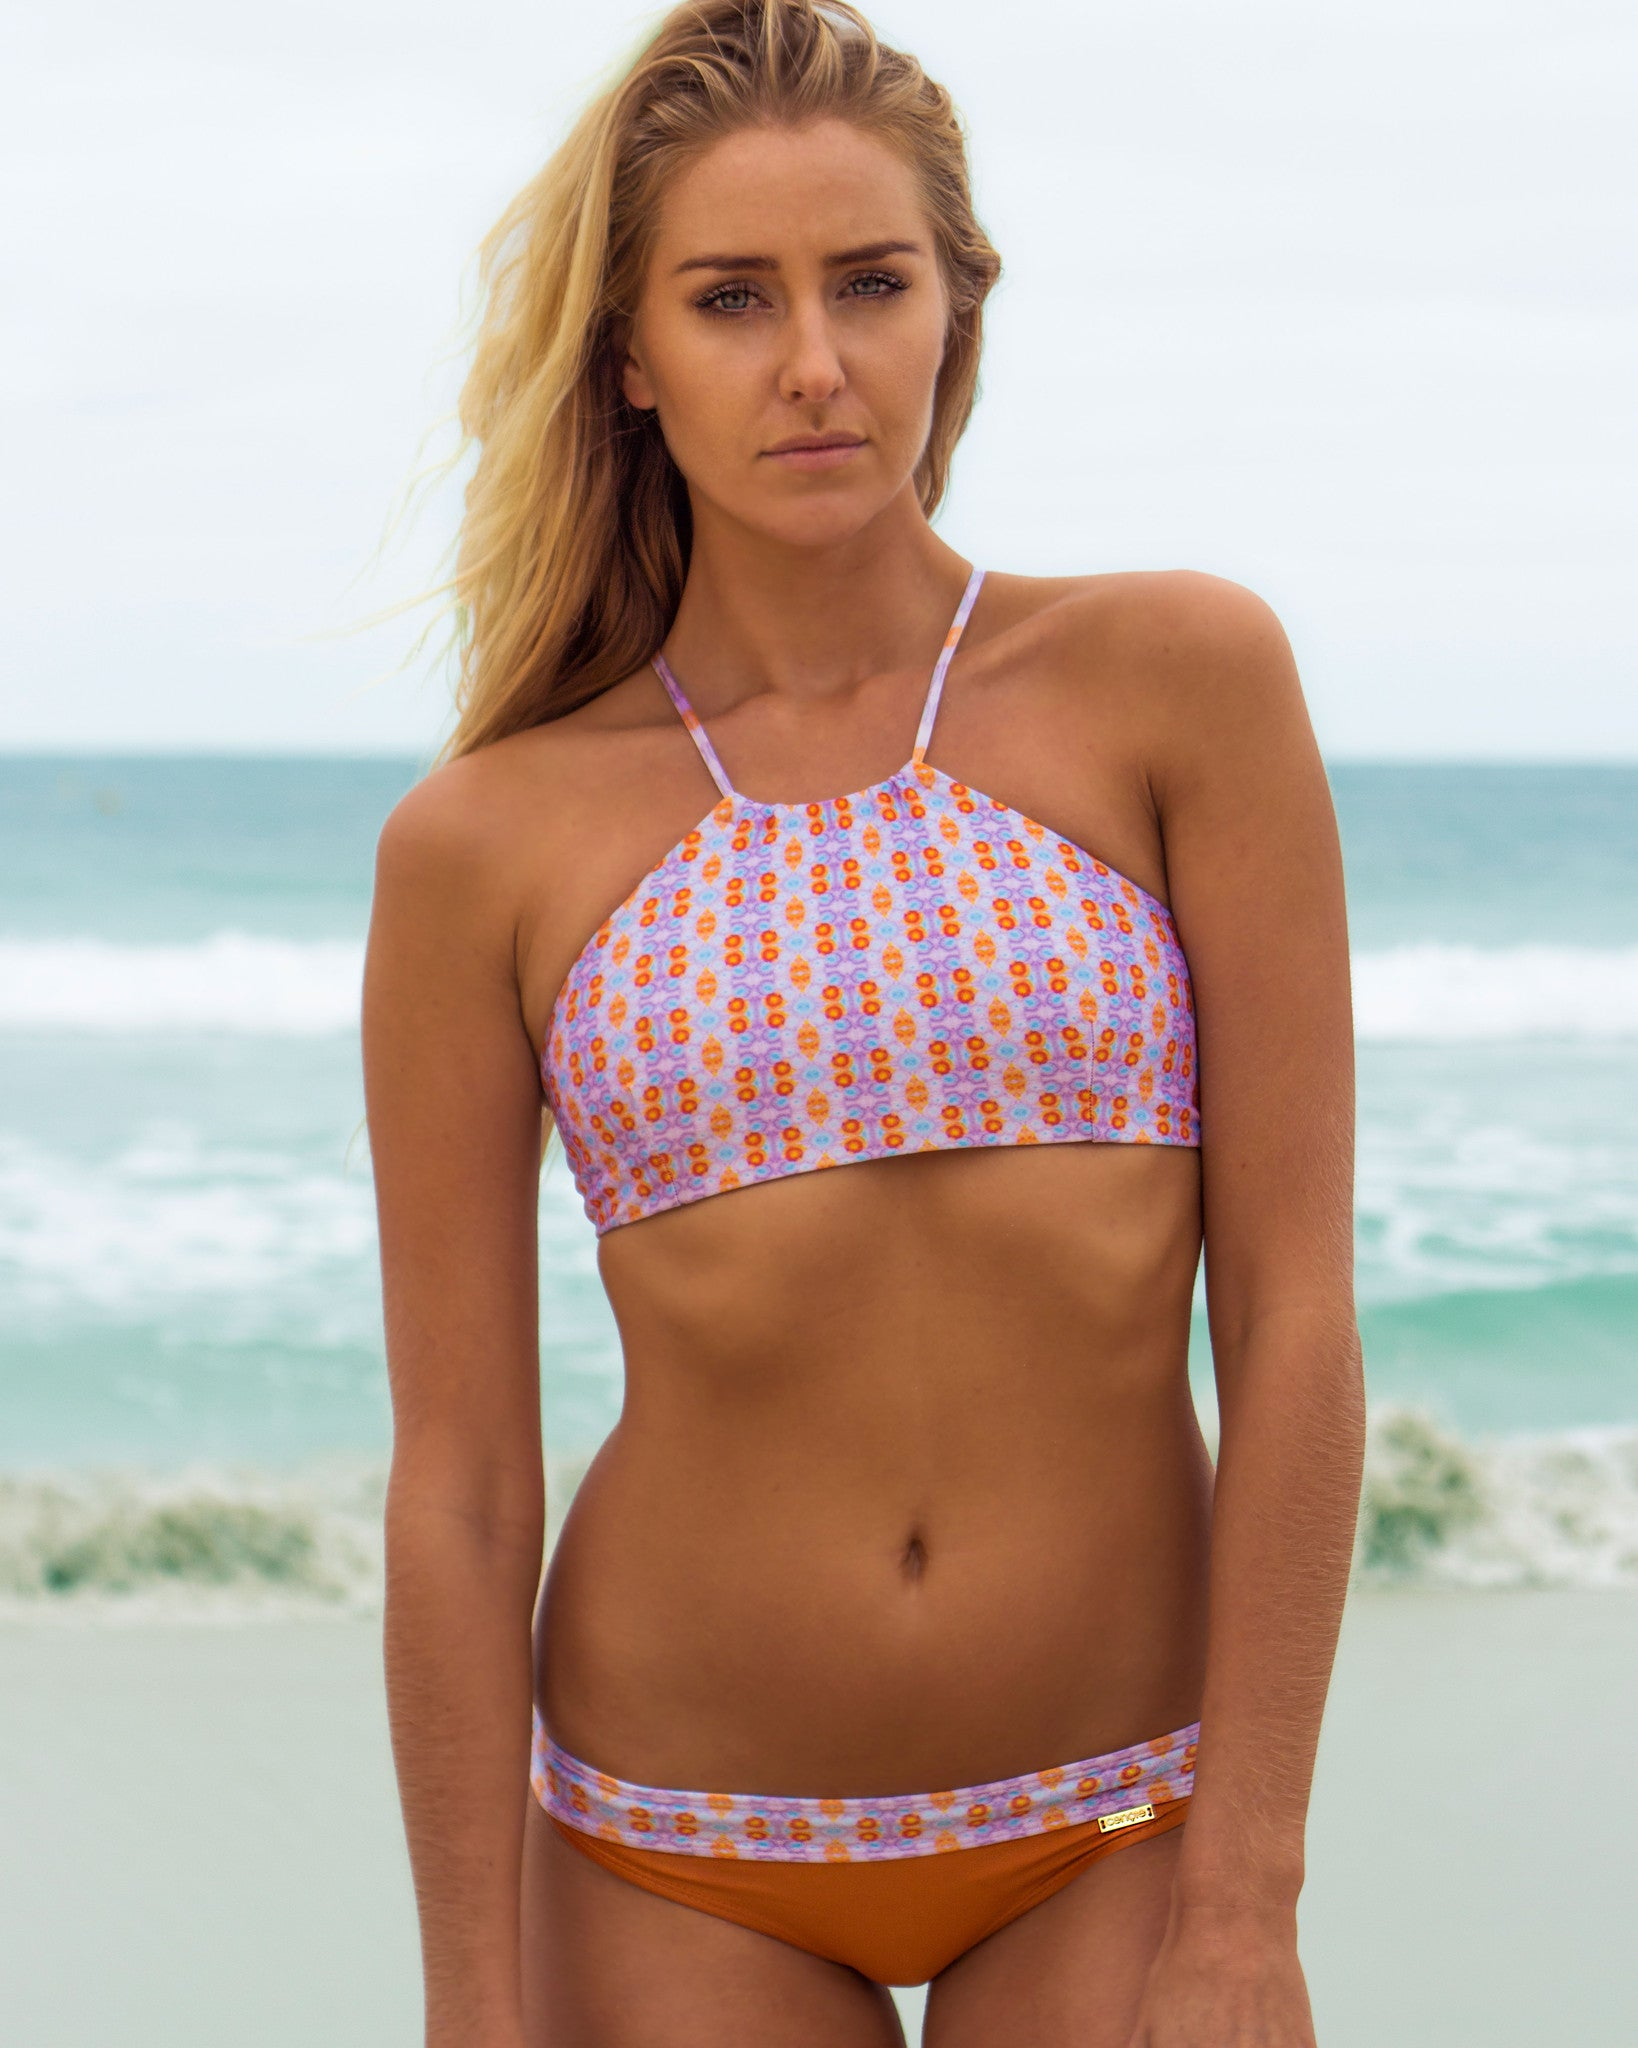 Nexpa btms - Water Colour / Sunburnt Orange - cheeky cut brazilian surf bikinis Cenote Swimwear that stays on in the surf